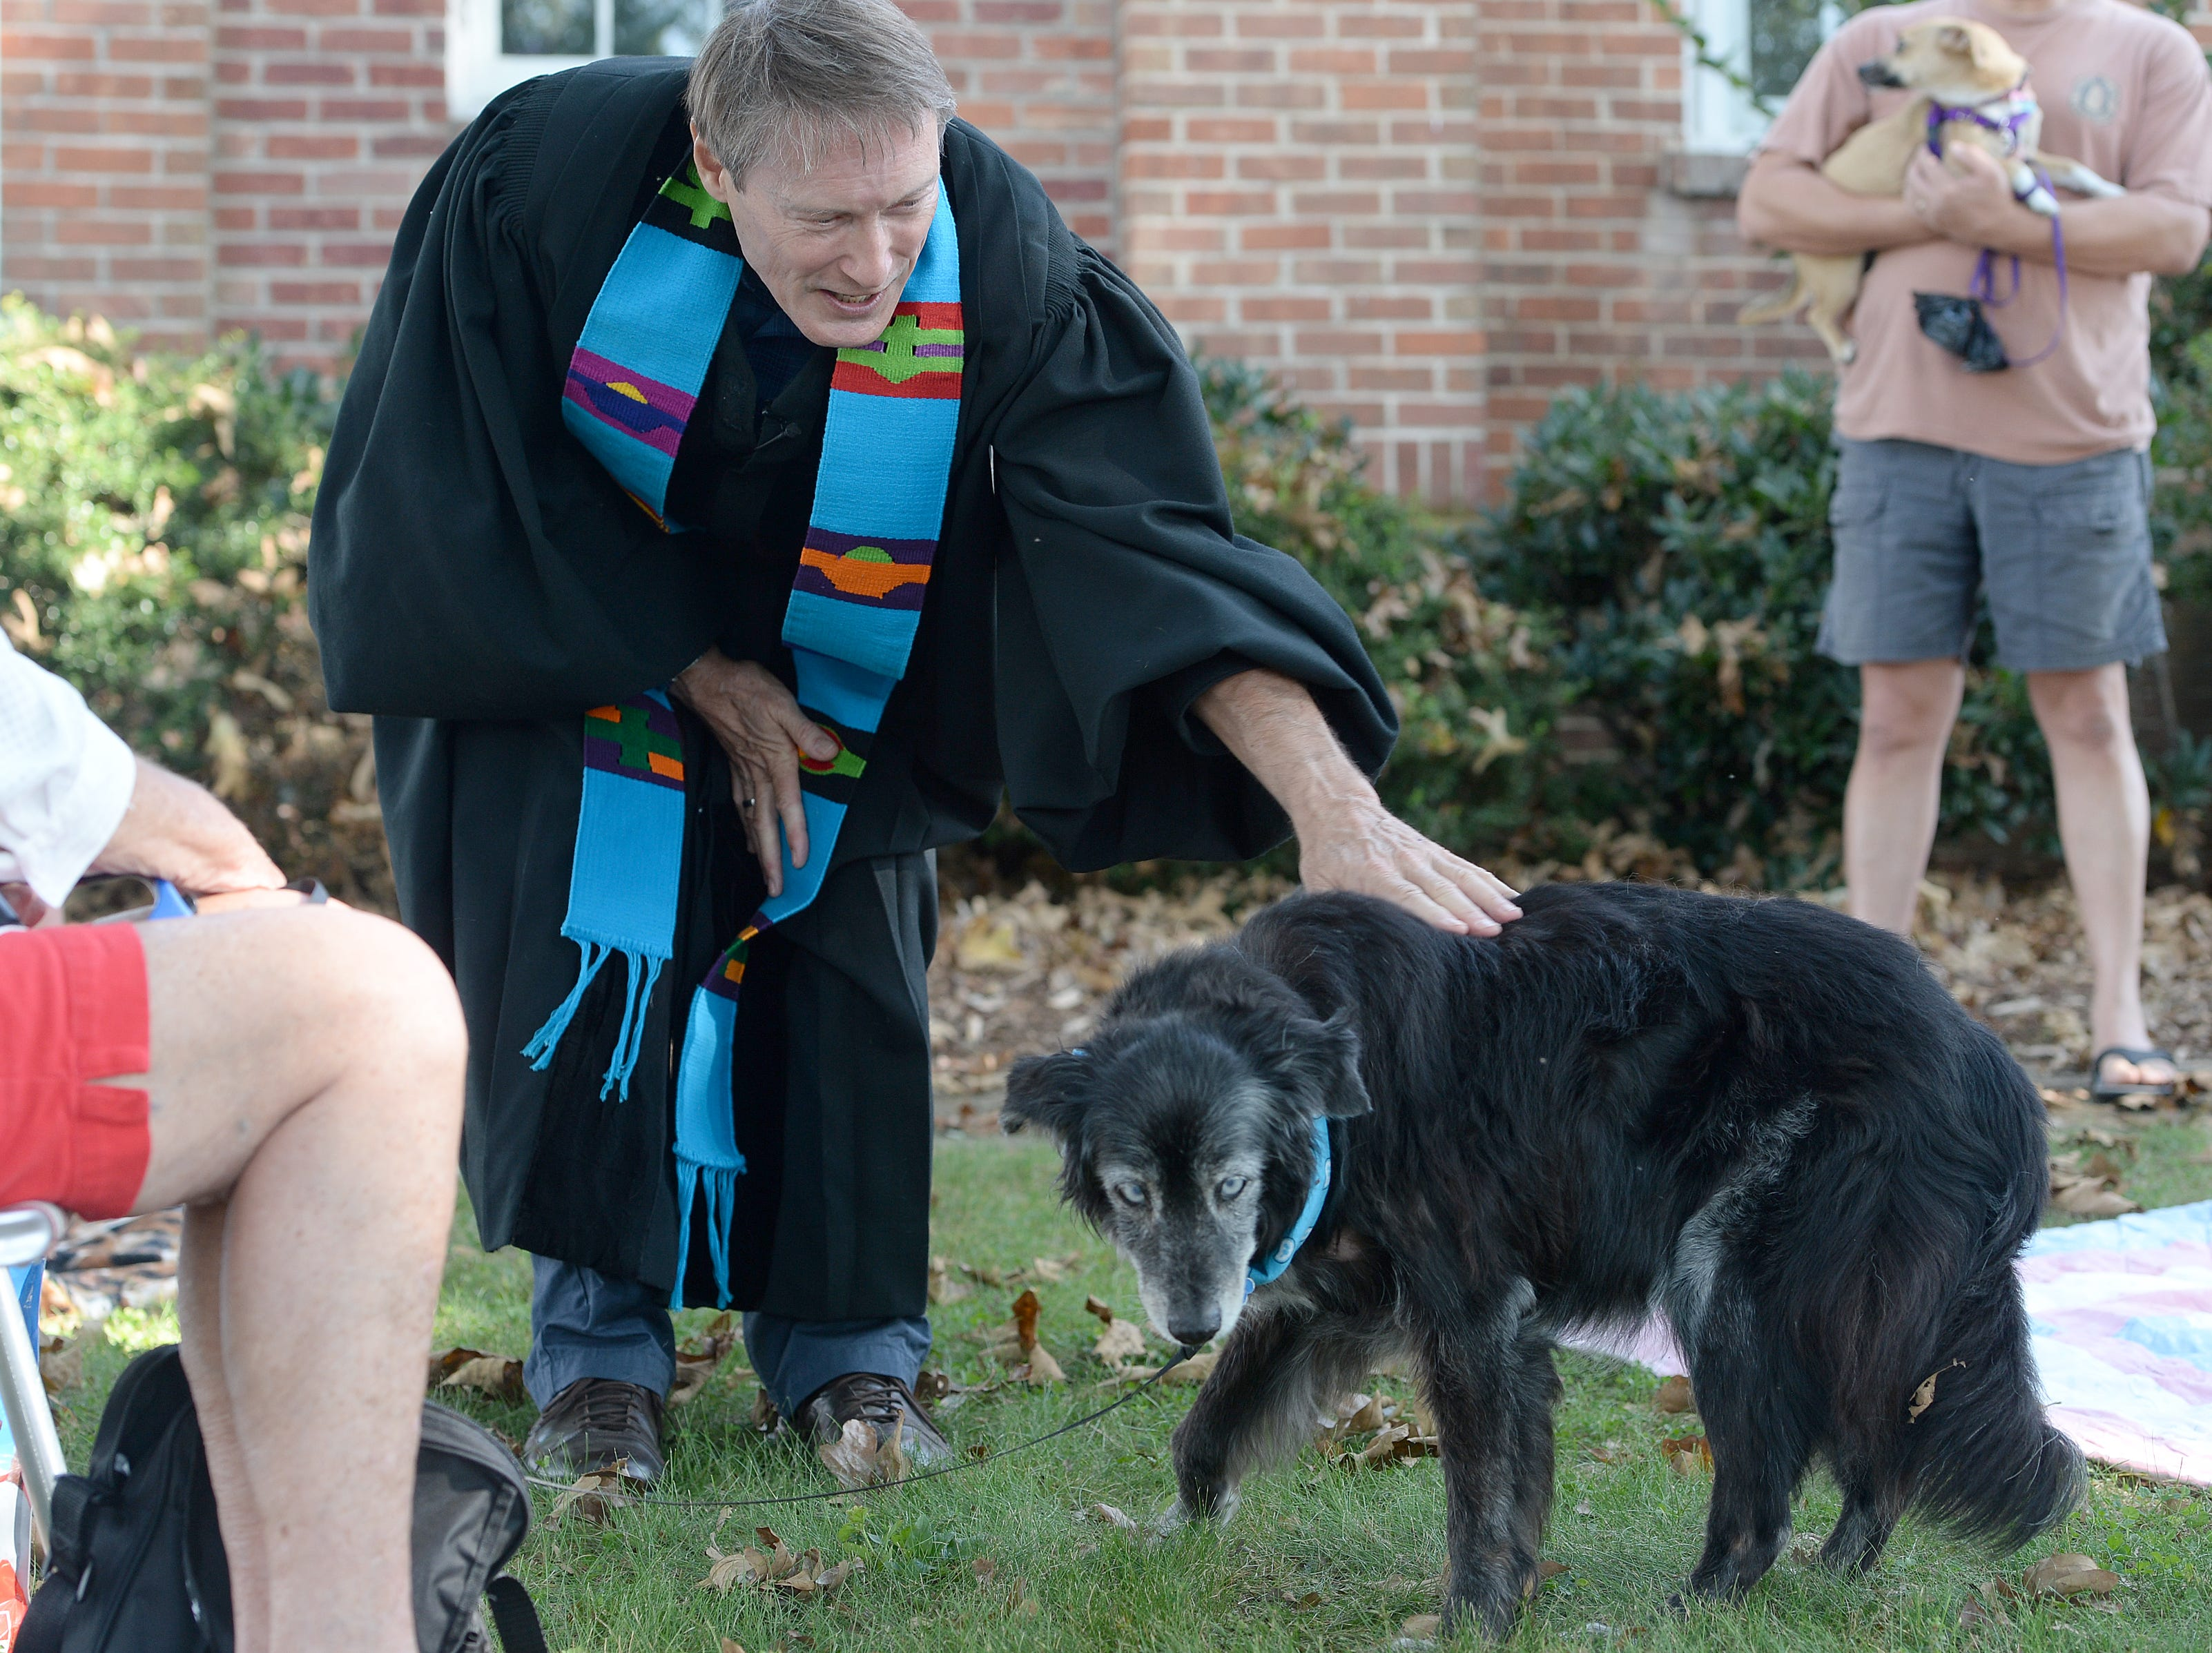 Randall Boggs blesses Susan Anderson's dog, Azul, during the 10th Annual Blessing of the Pets at Mills River Presbyterian Church on Sept. 8, 2018.